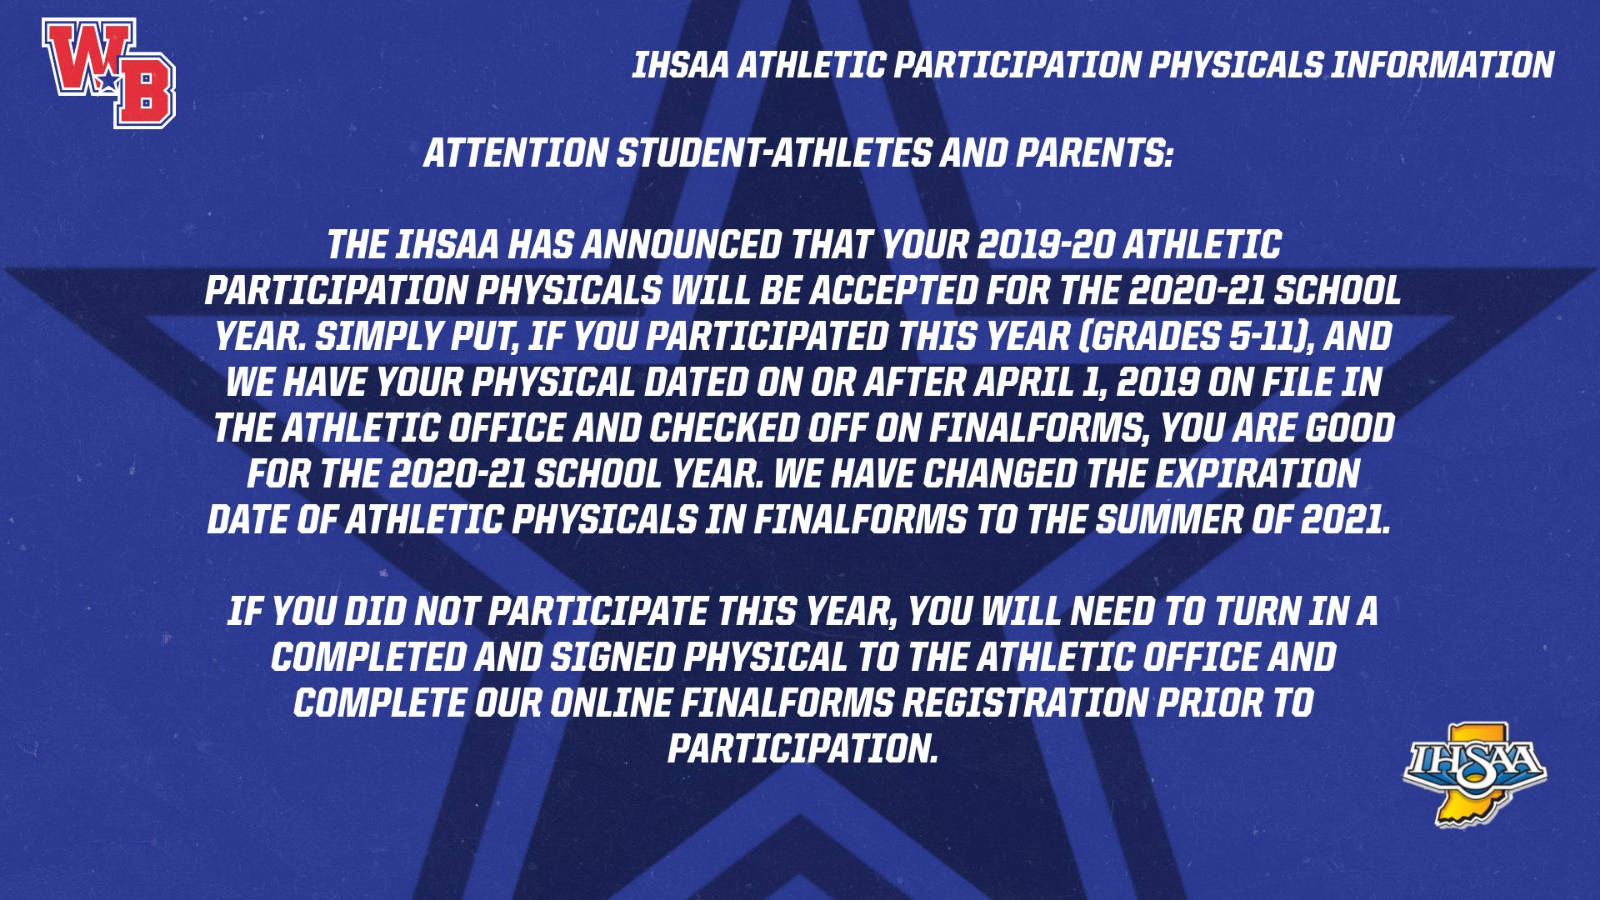 Athletic Physicals from 2019-20 Now Valid Through 2020-21 School Year